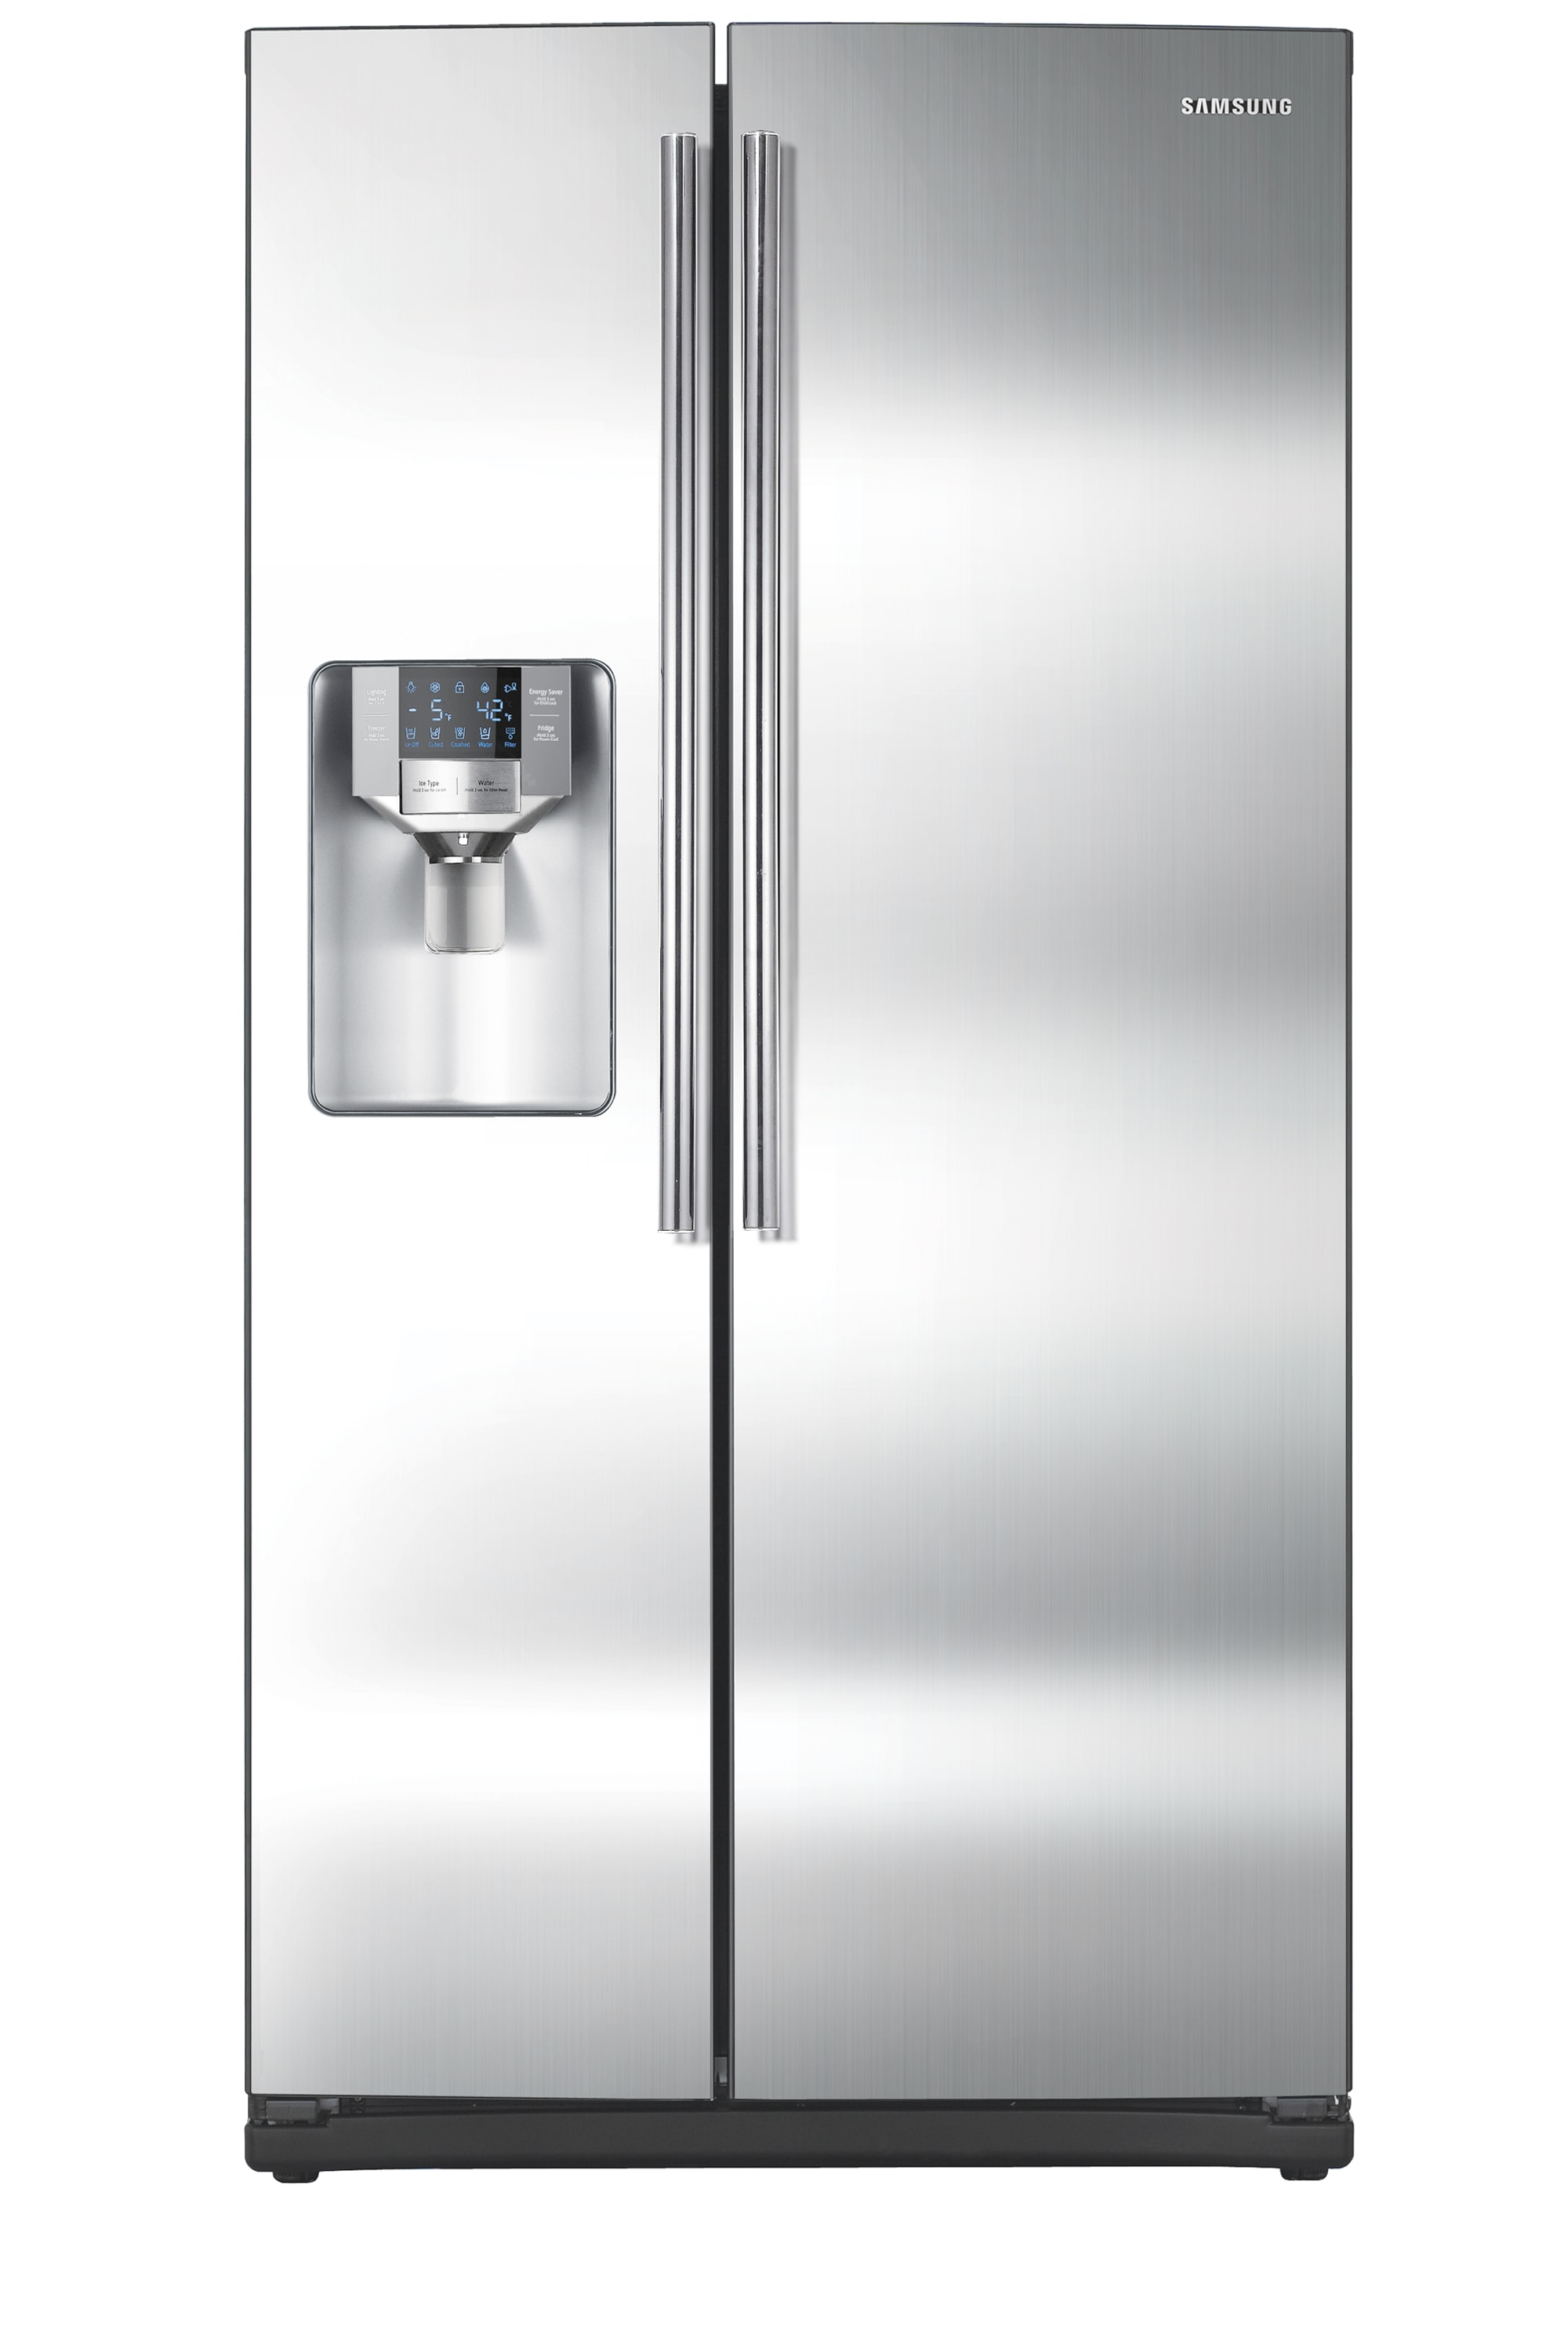 SSEDA 25.5 cu.ft Side-by-Side Refrigerator (Stainless Steel)